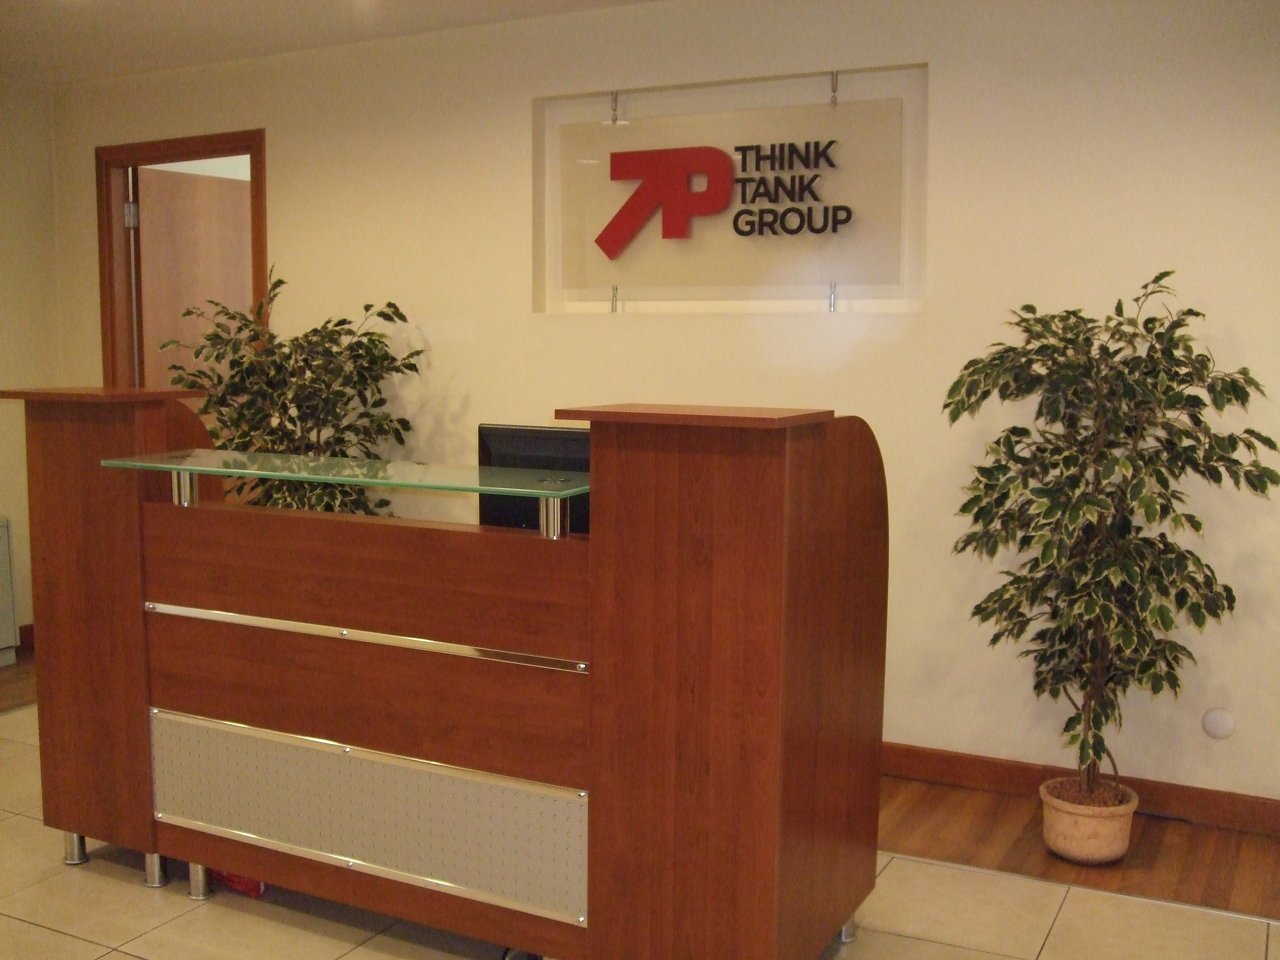 7P THINK TANK OFFICE